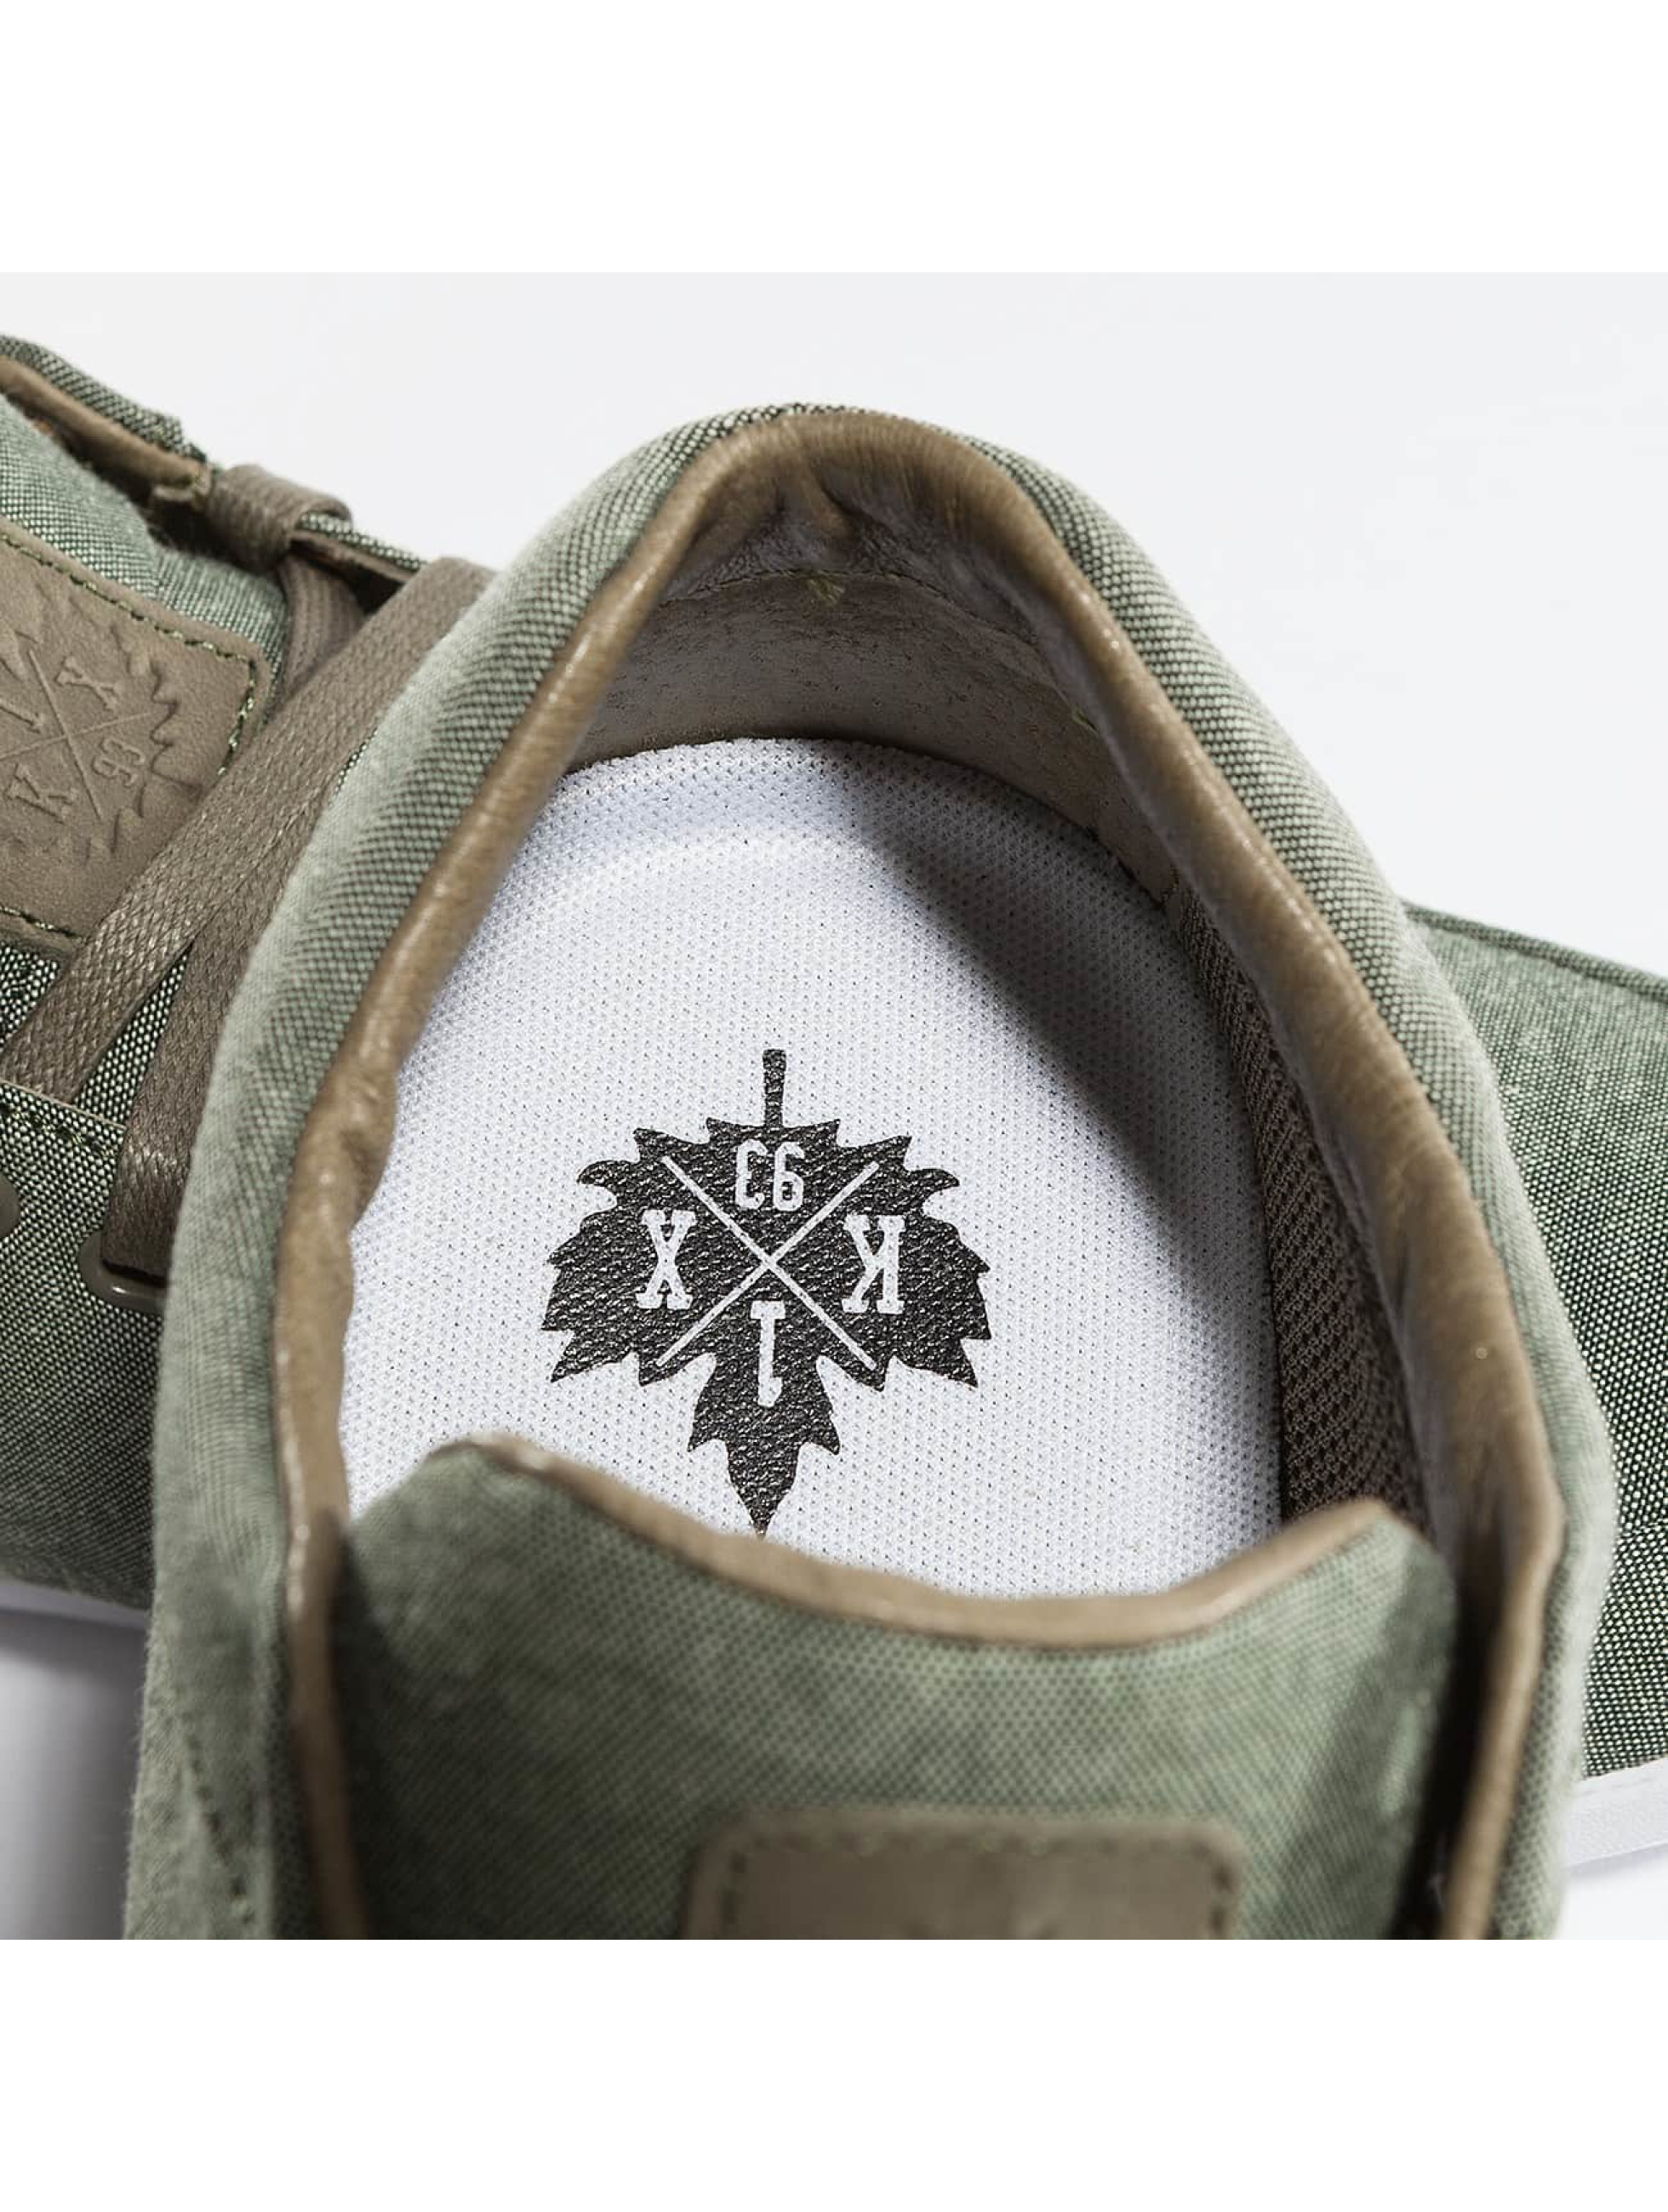 K1X Sneakers LP Low olive